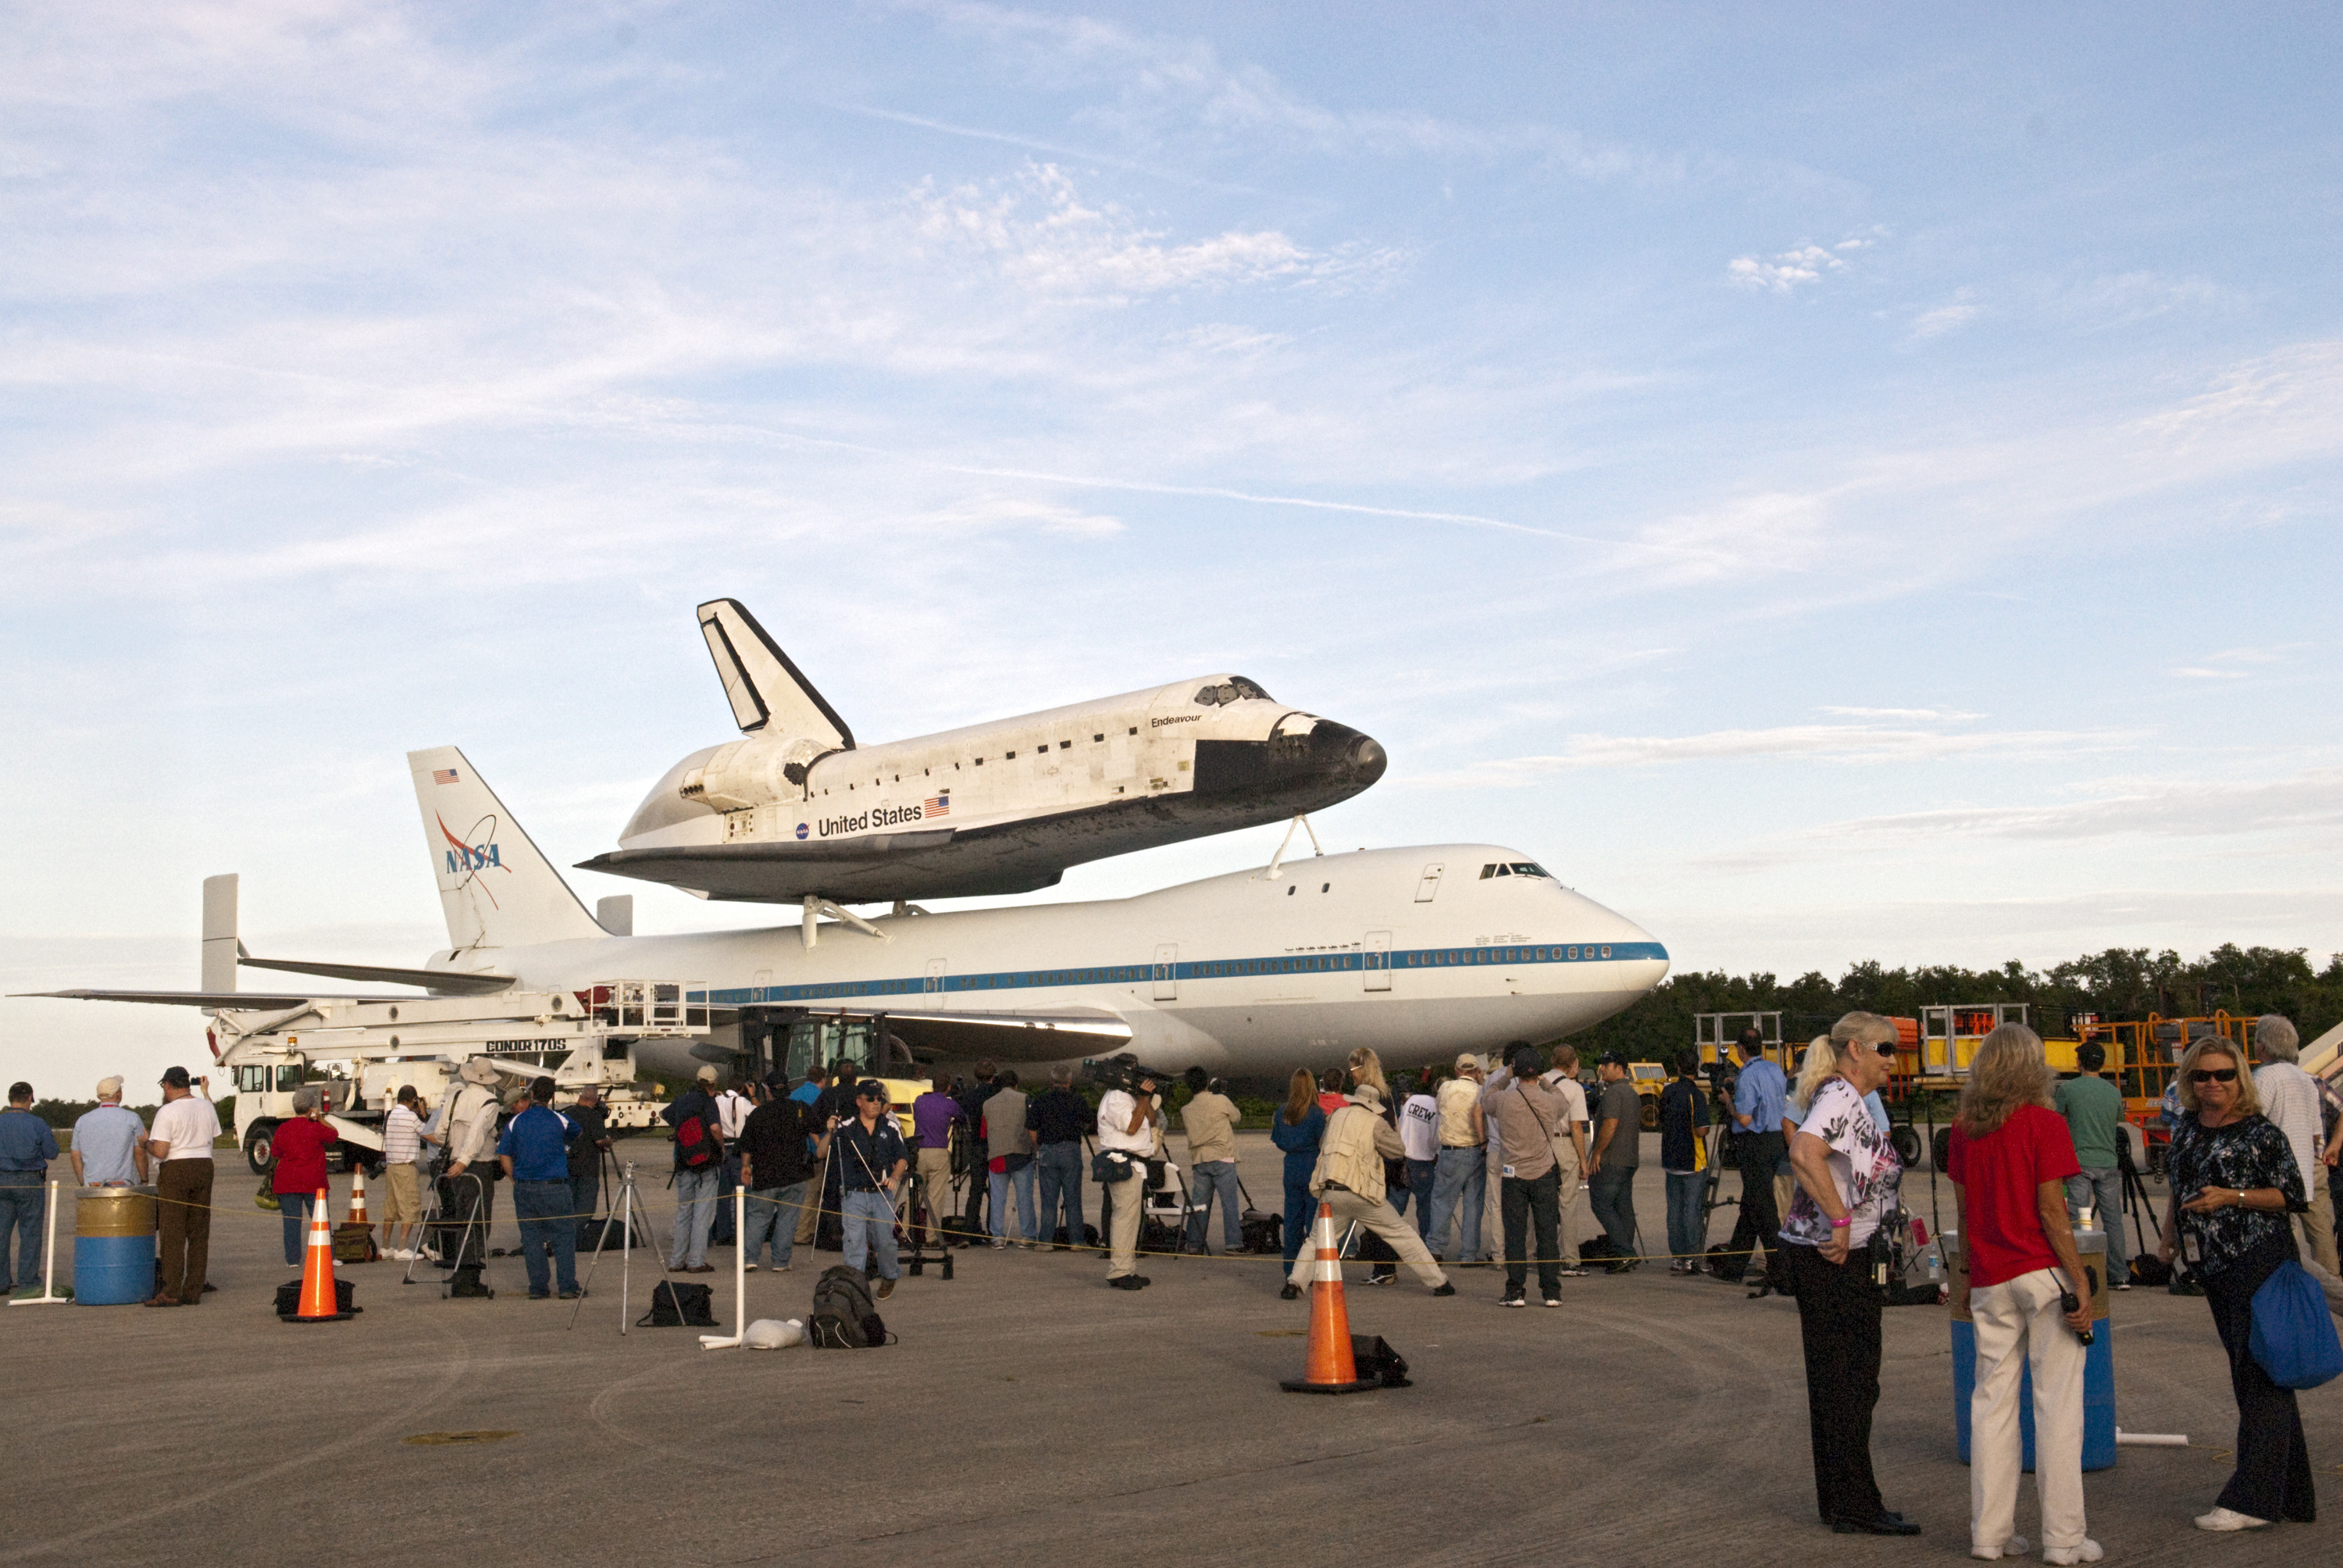 Shuttle Endeavour Prepared for Last Ferry Flight